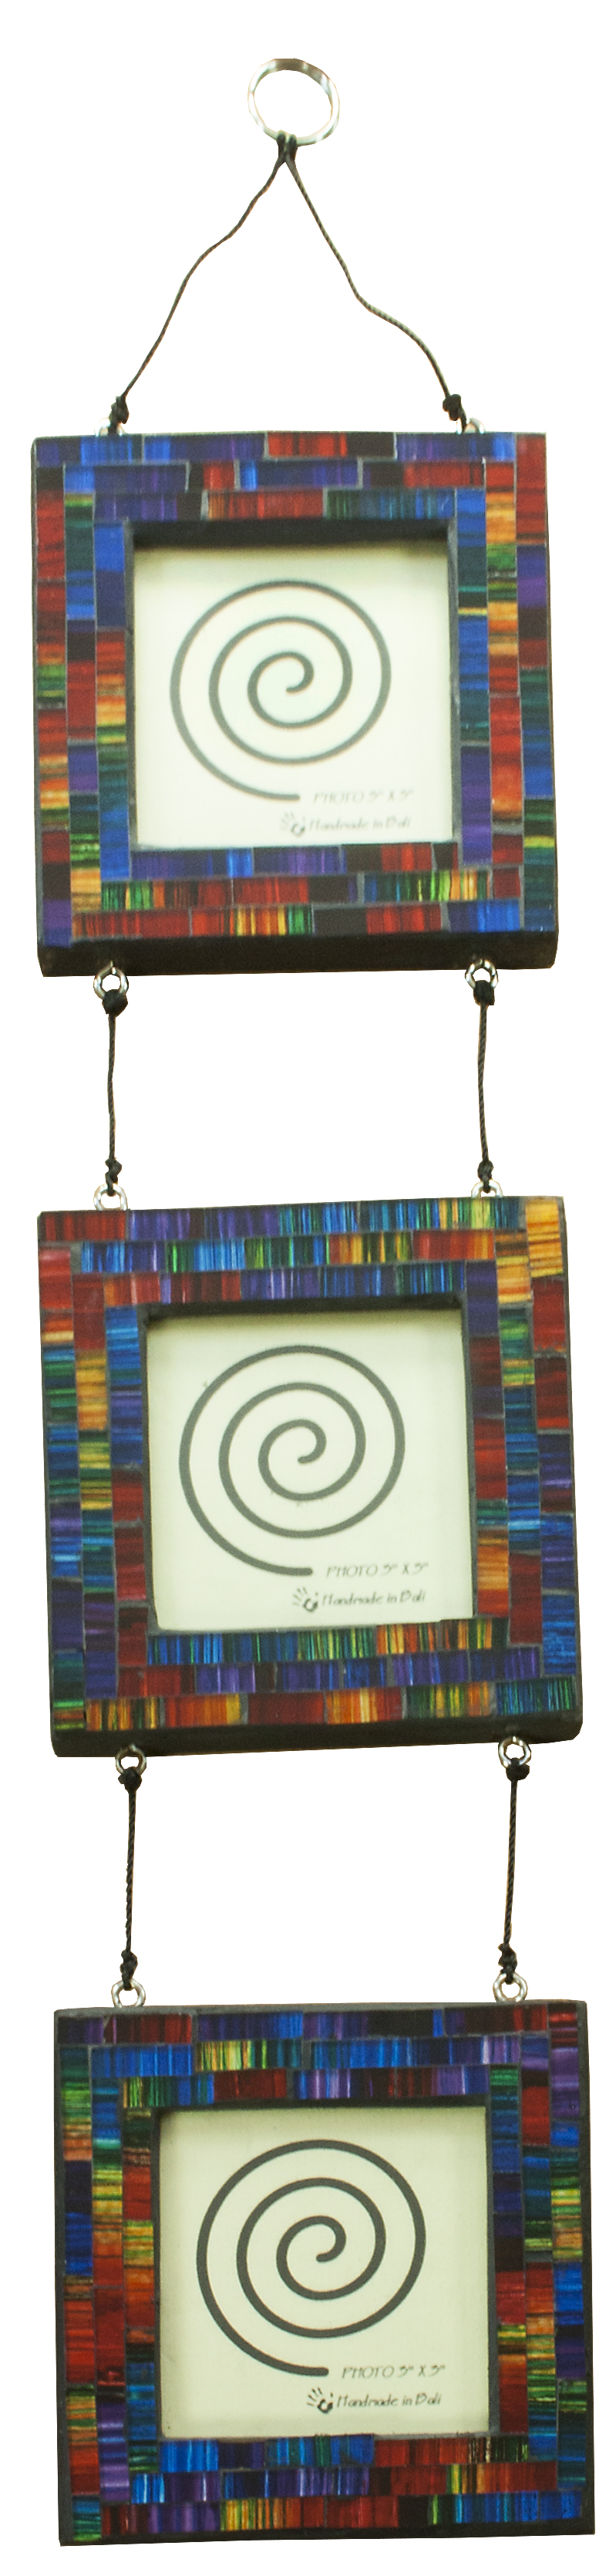 A string of three hanging photograph frames.